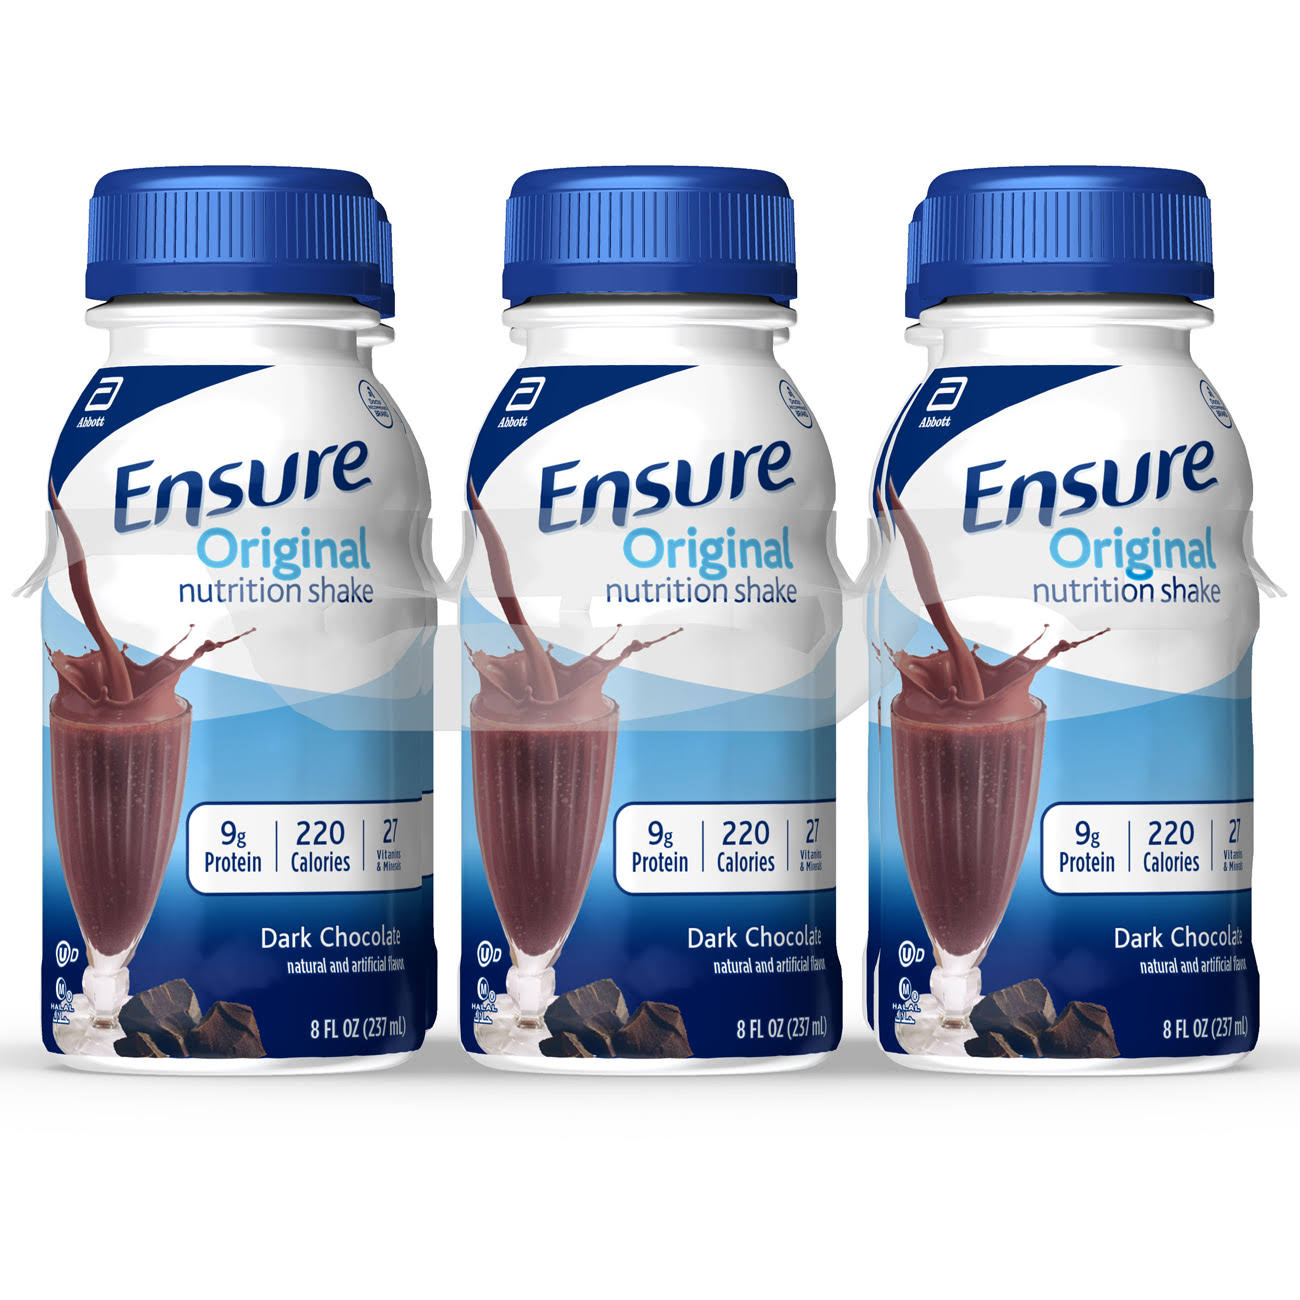 Ensure Original Nutrition Shake - Dark Chocolate, 8oz